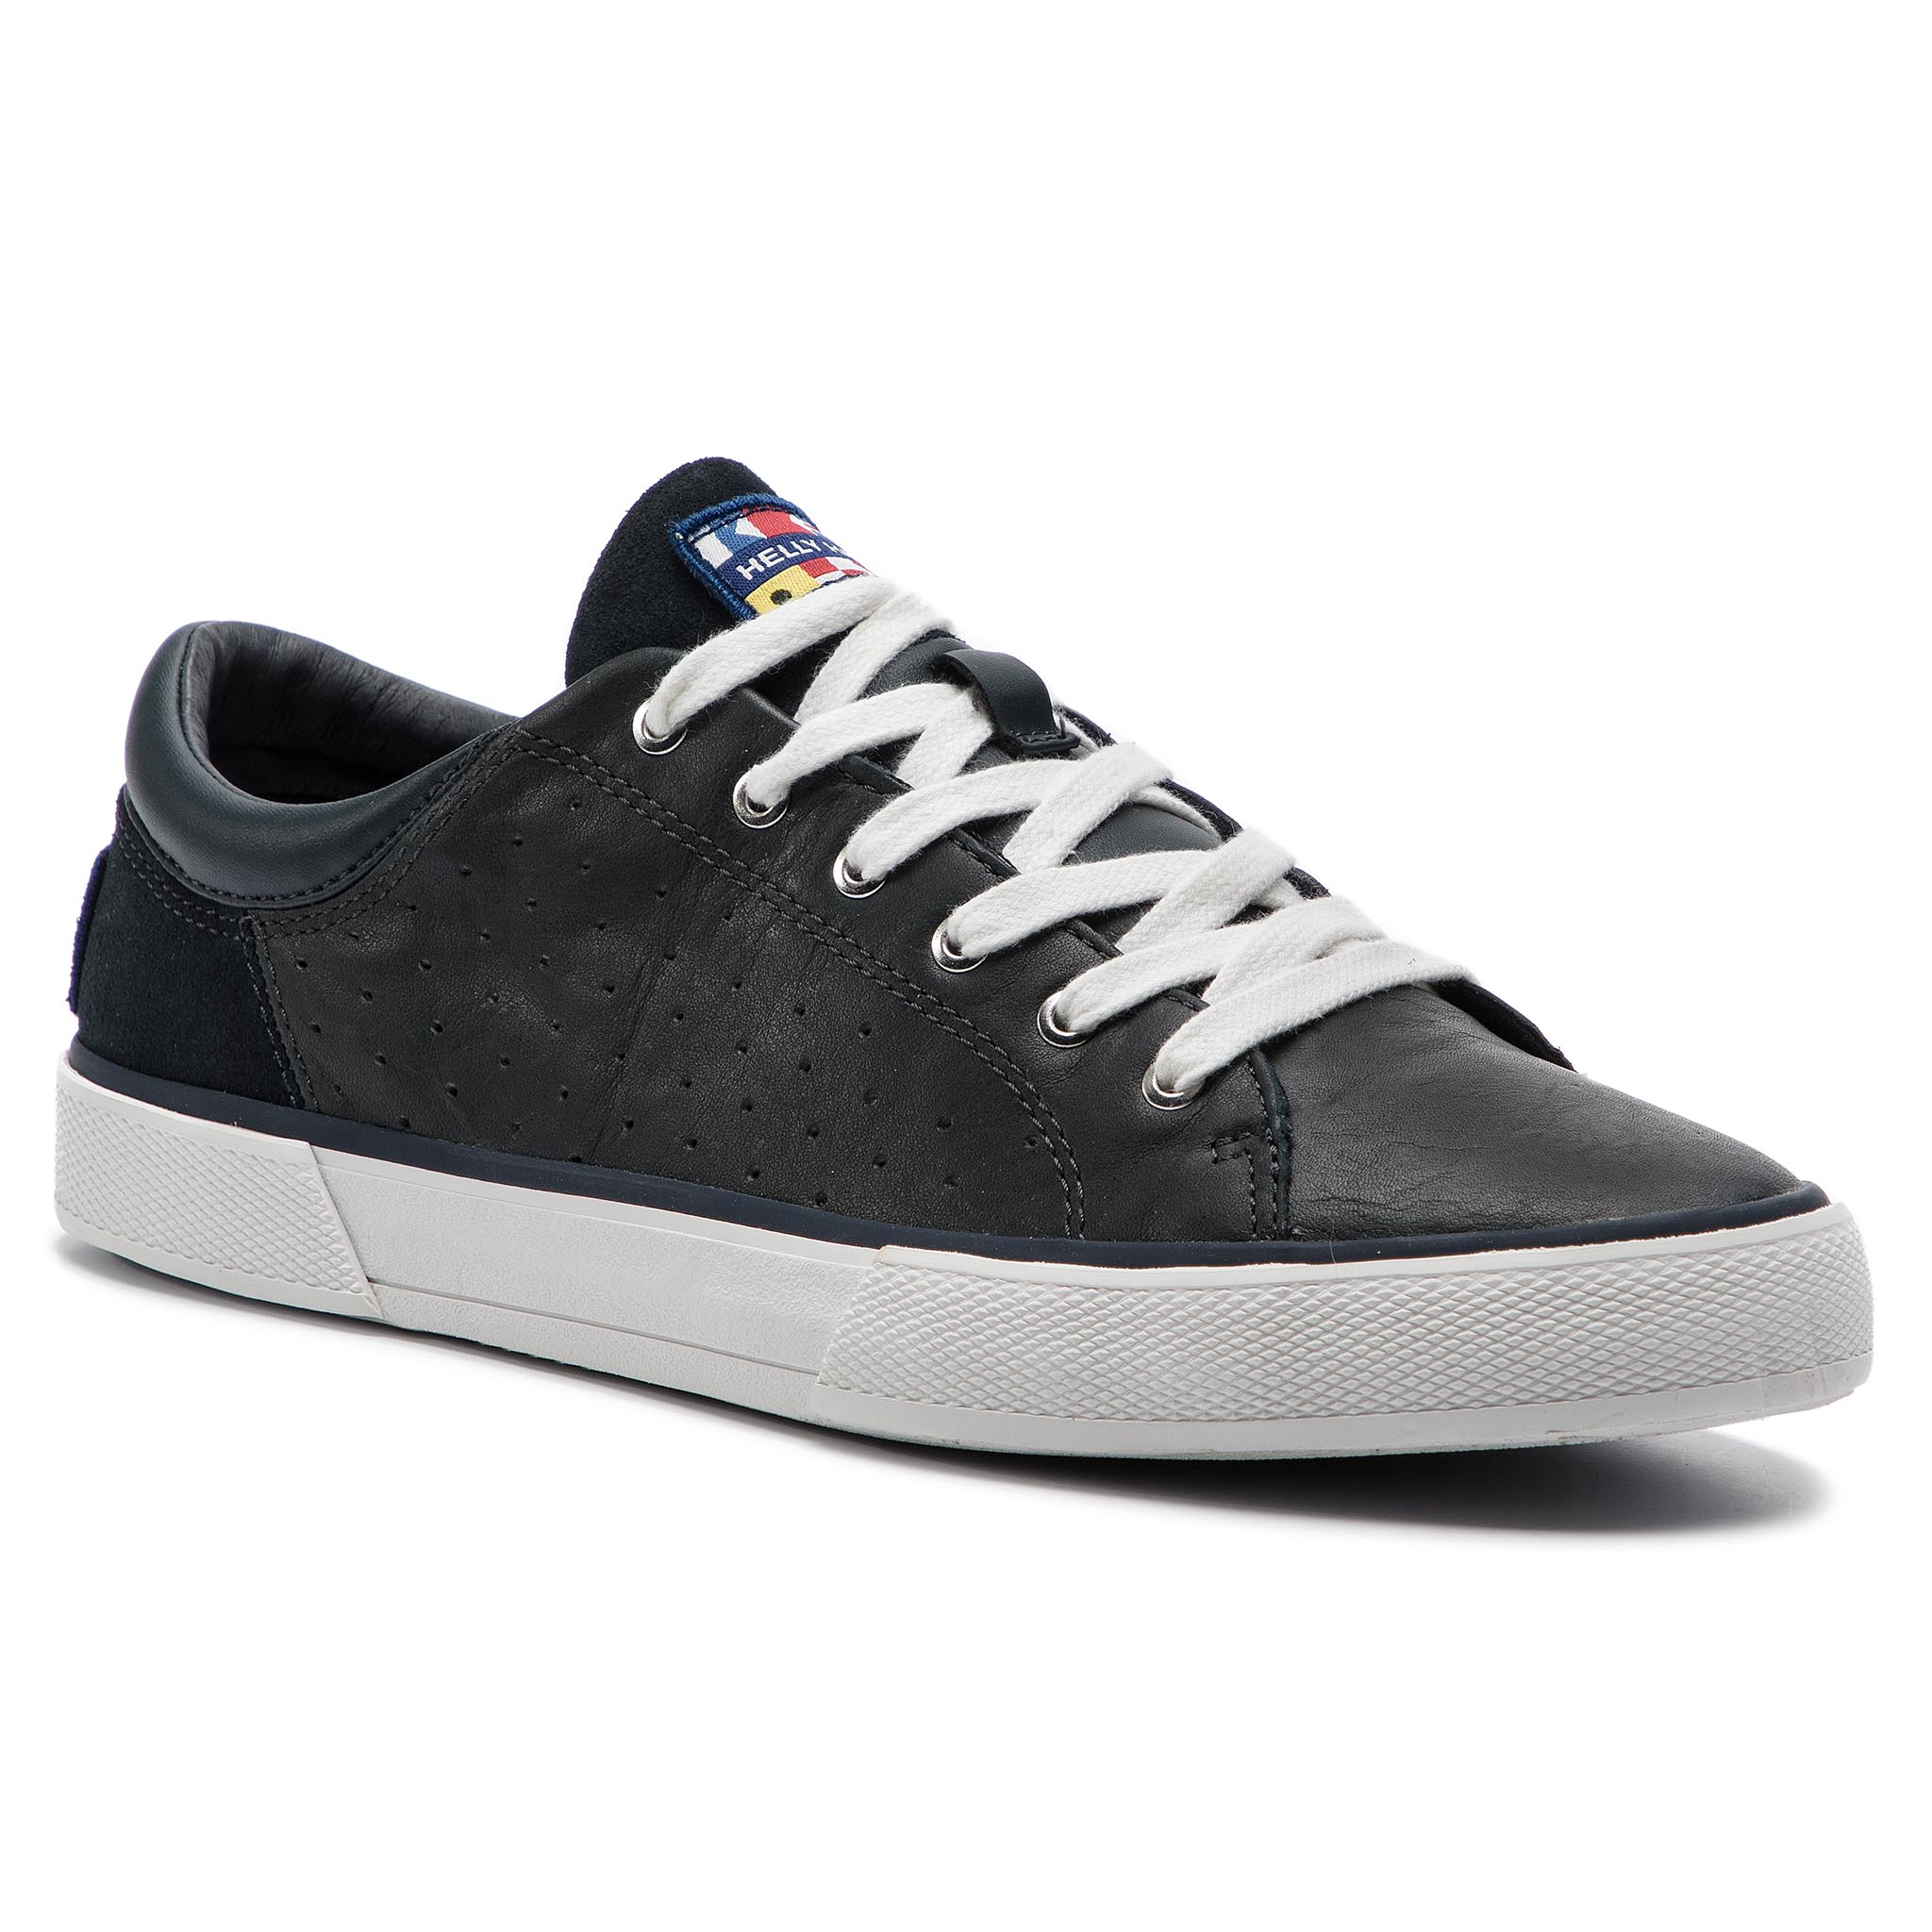 Teniși HELLY HANSEN - Copenhagen Leather Shoe 115-02.597 Navy/Off White